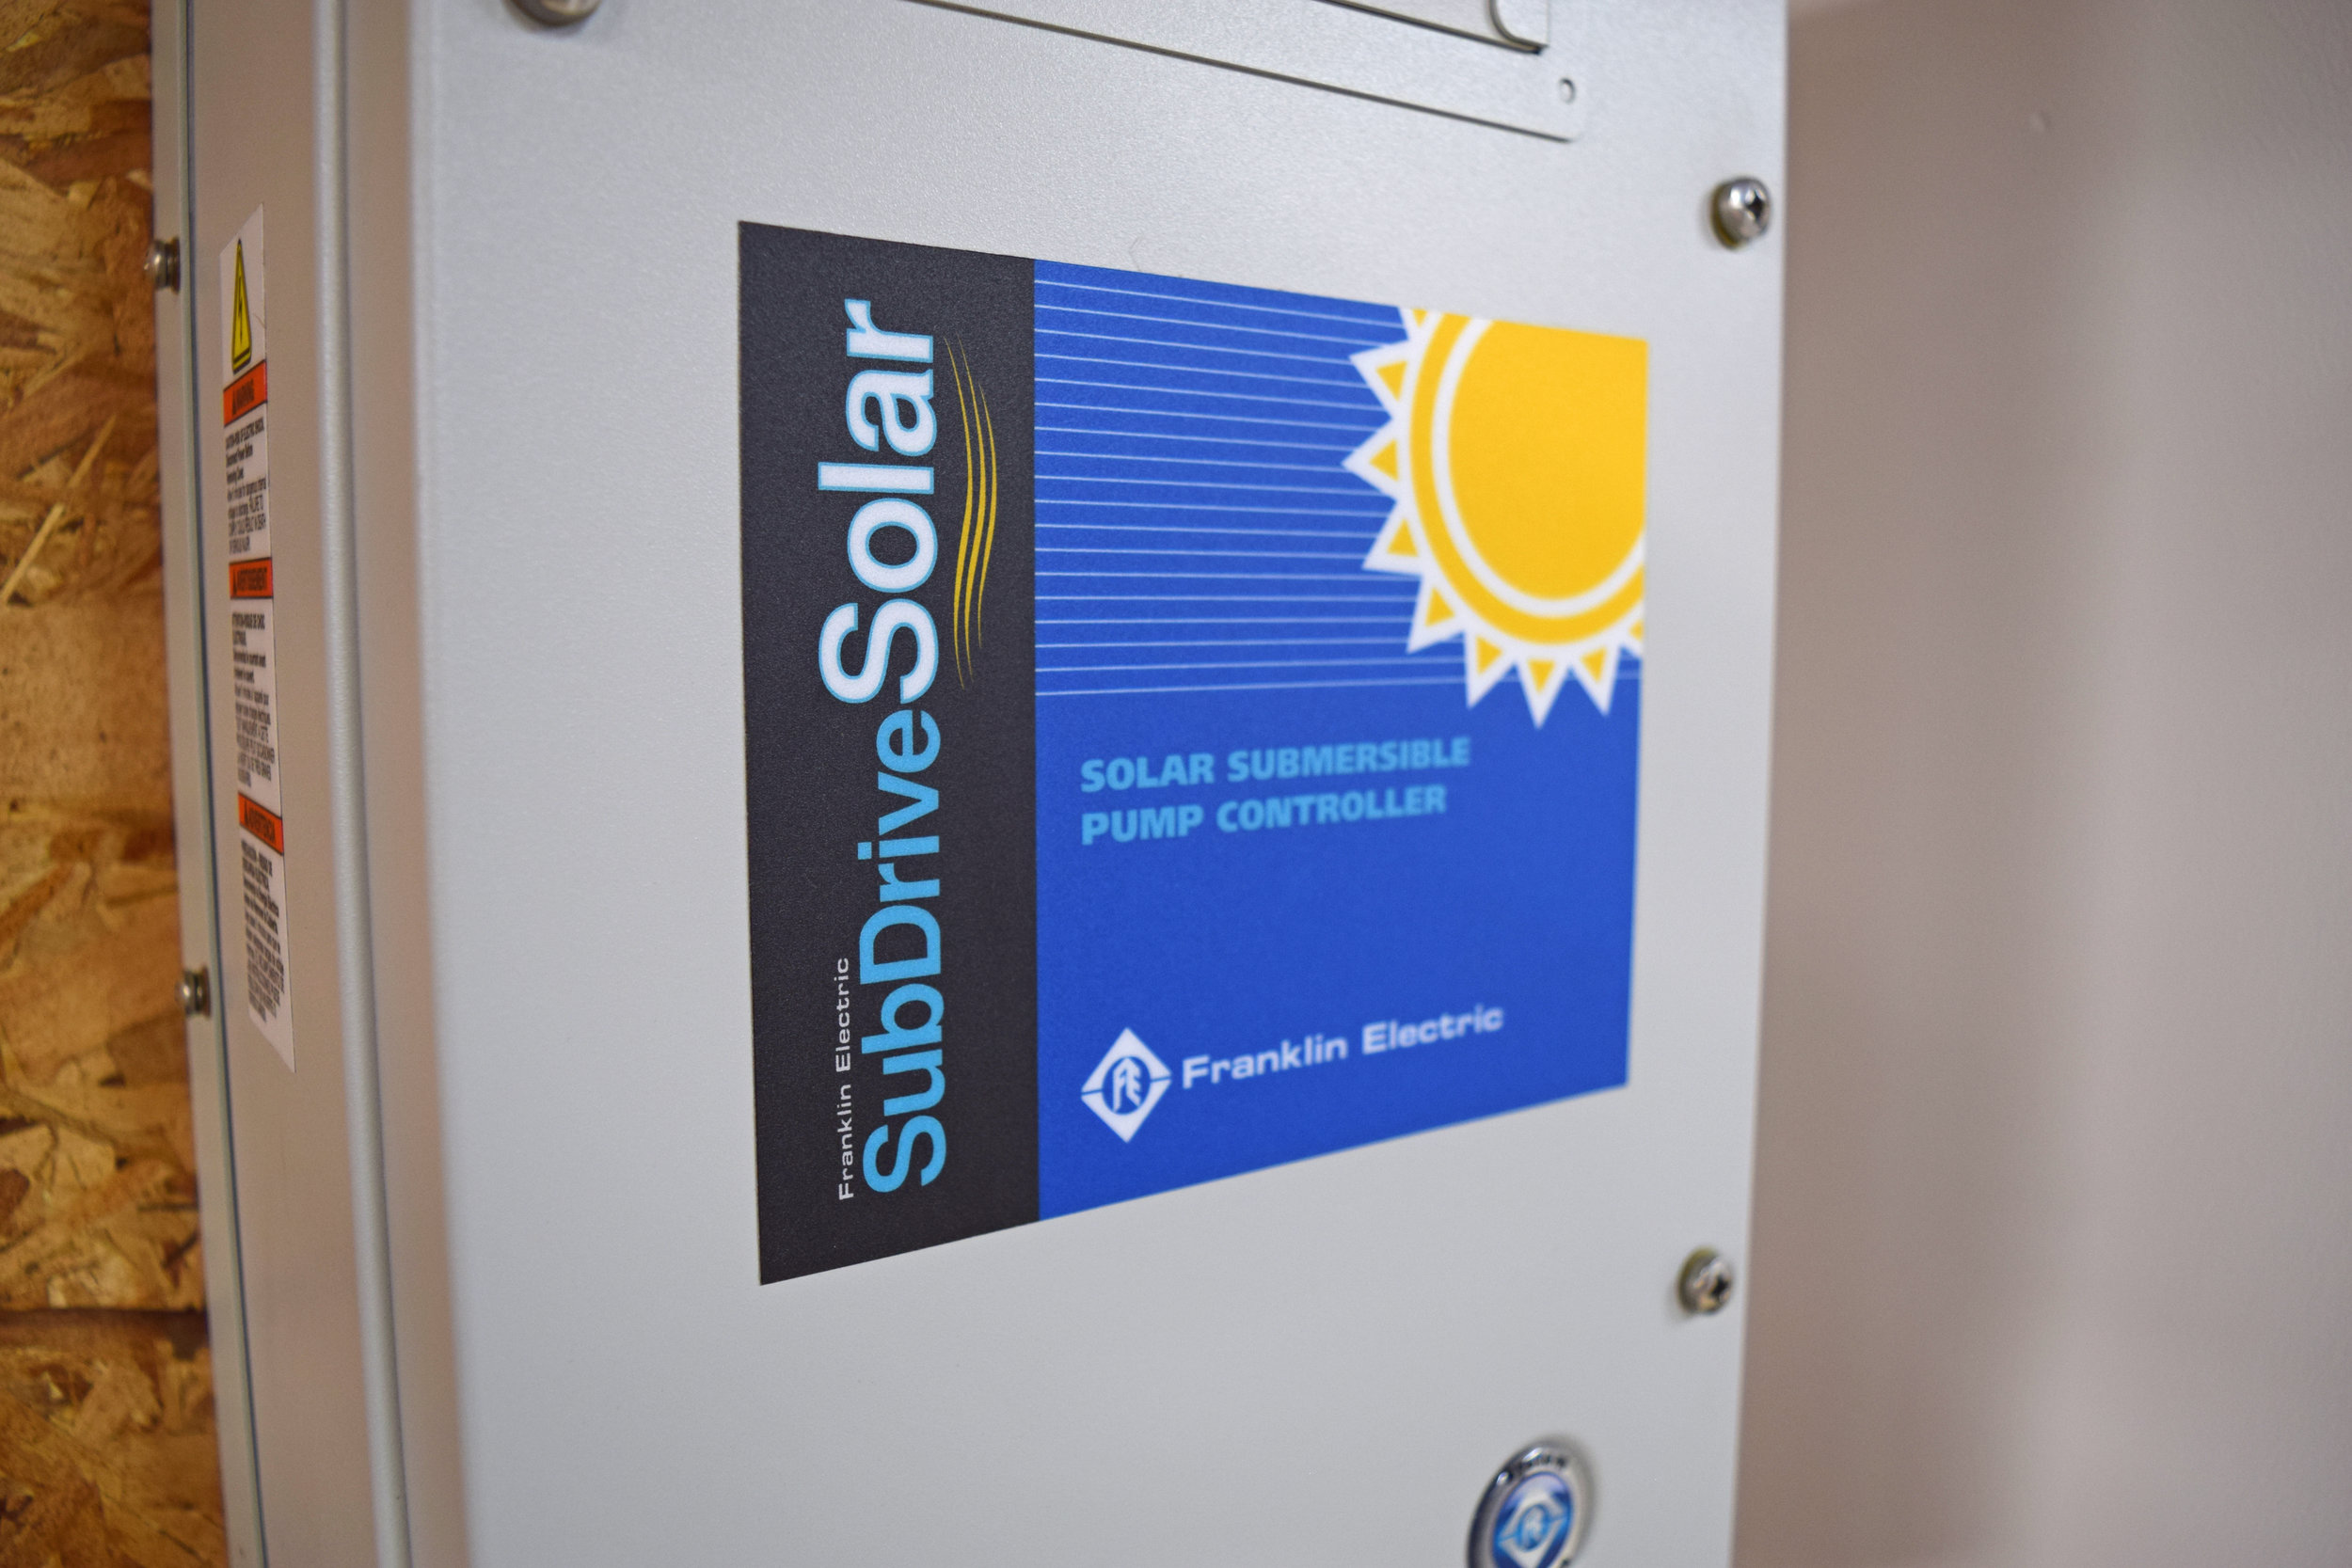 SubDriveSolar submersible pump controller from Franklin Electric.